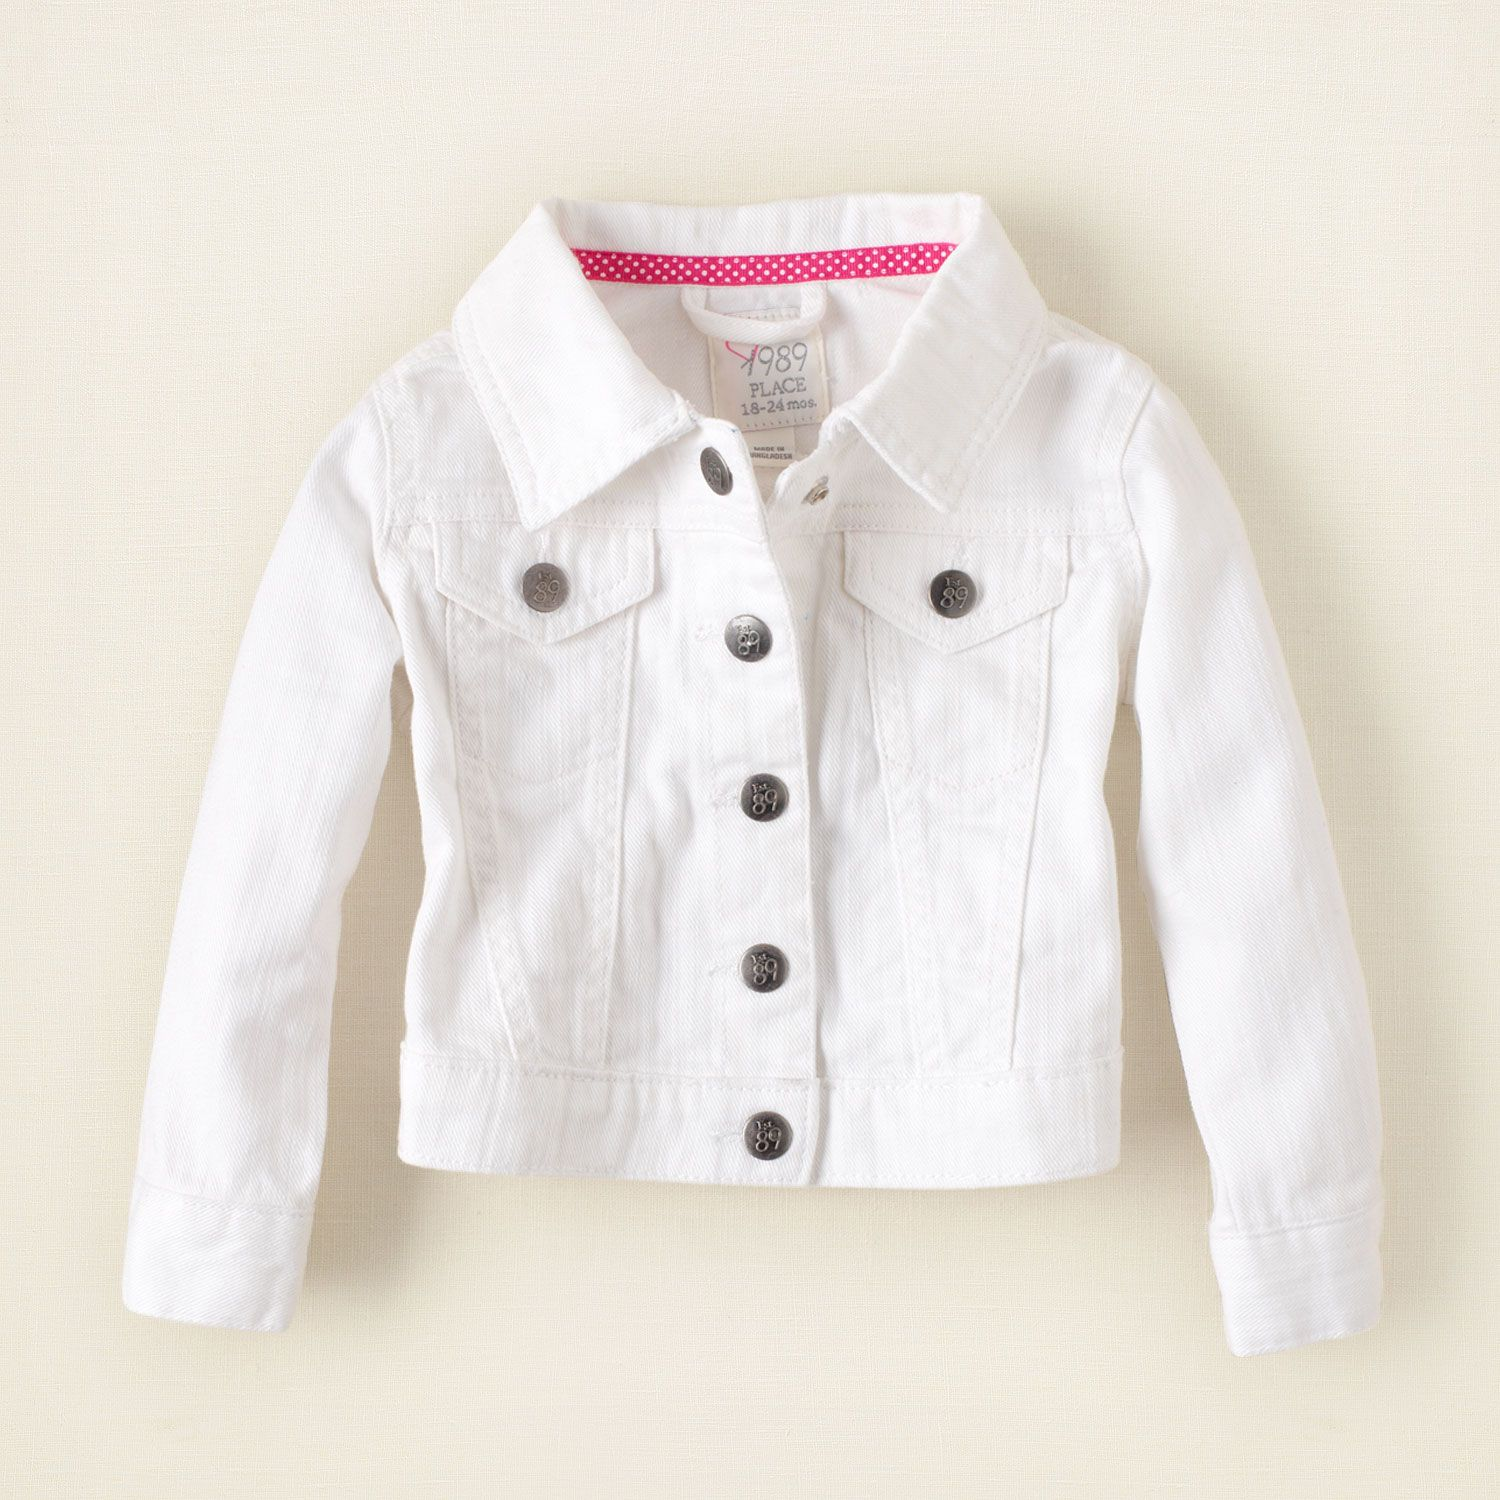 Color Jean Jacket The Children S Place 24 95 Clothes Baby Clothes White Jeans Girls